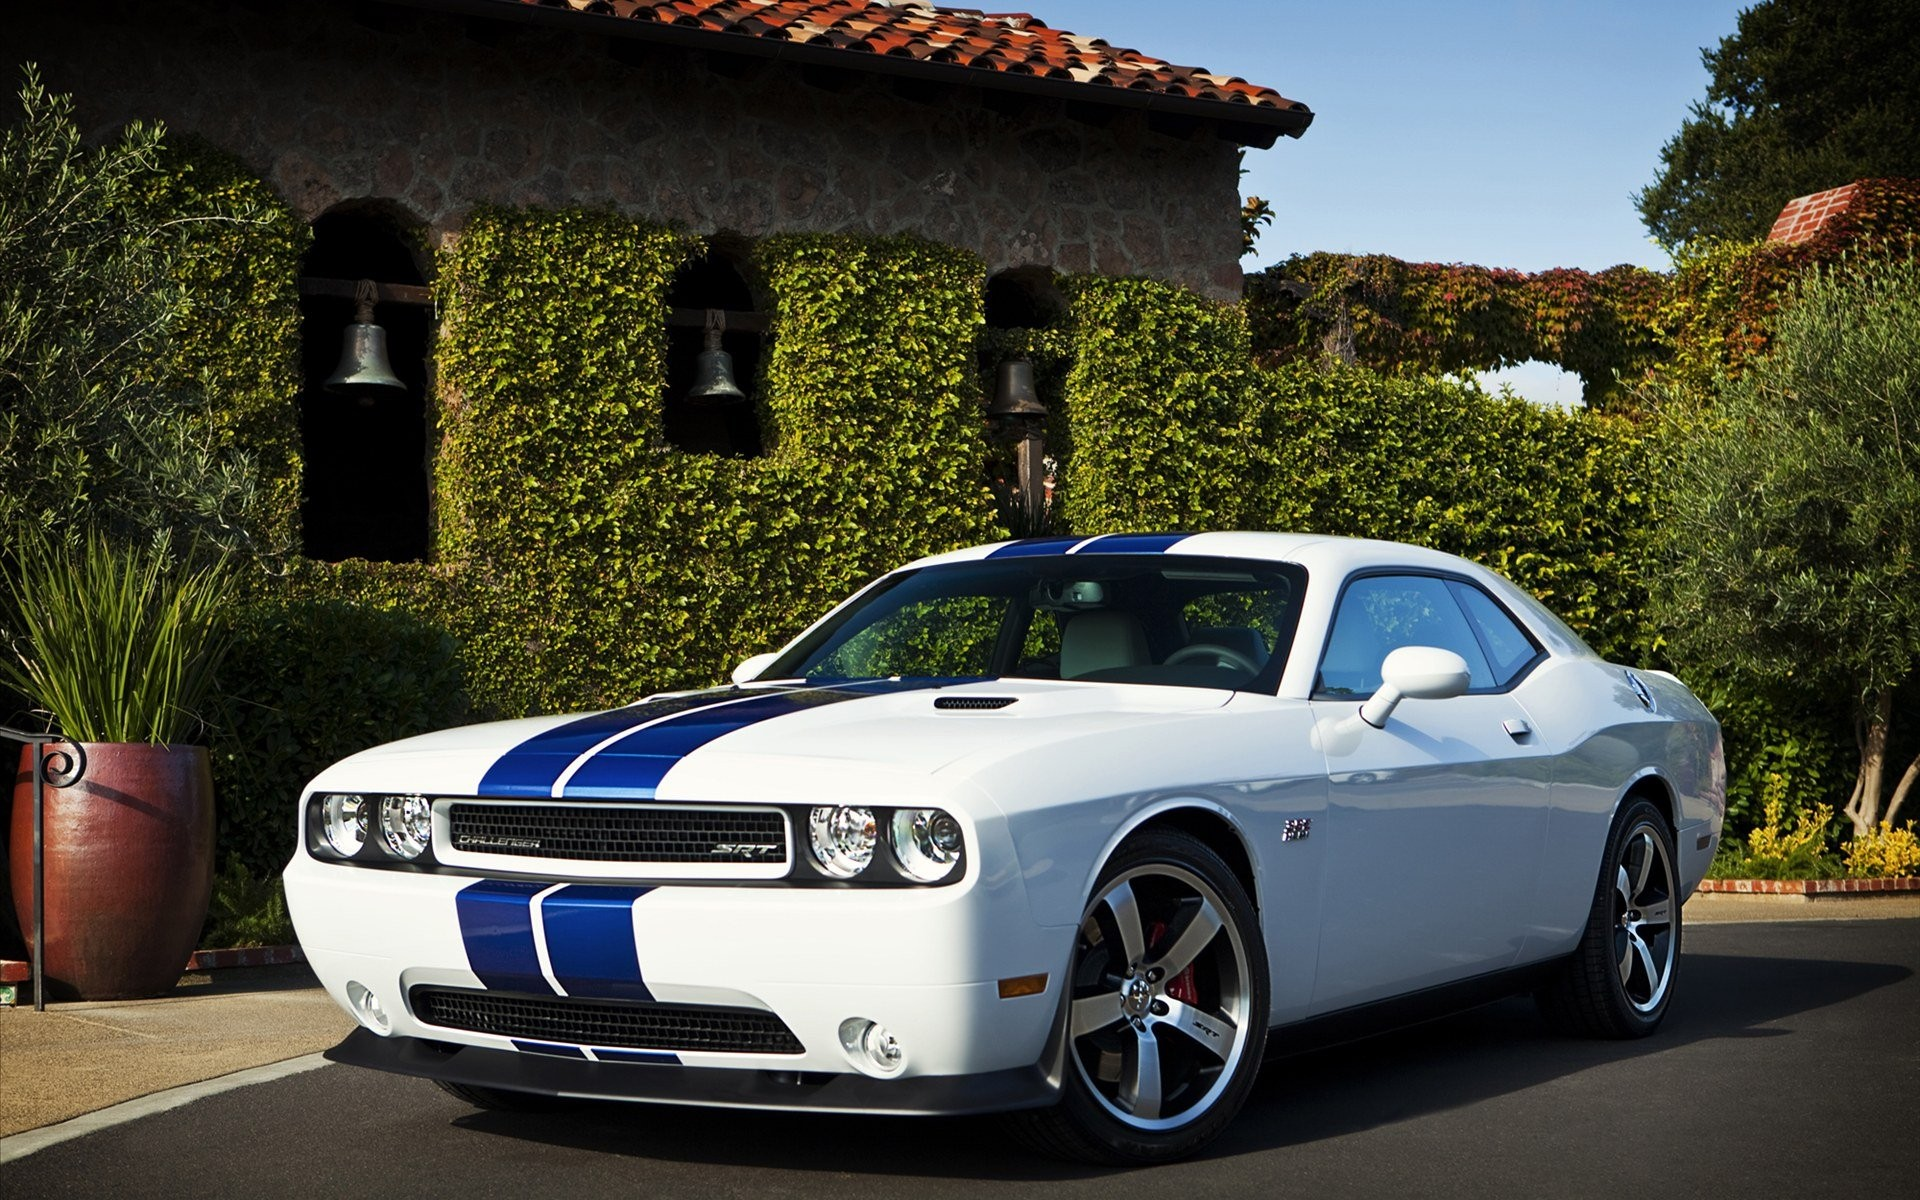 White Cars Dodge Challenger Racing Stripes Muscle Car